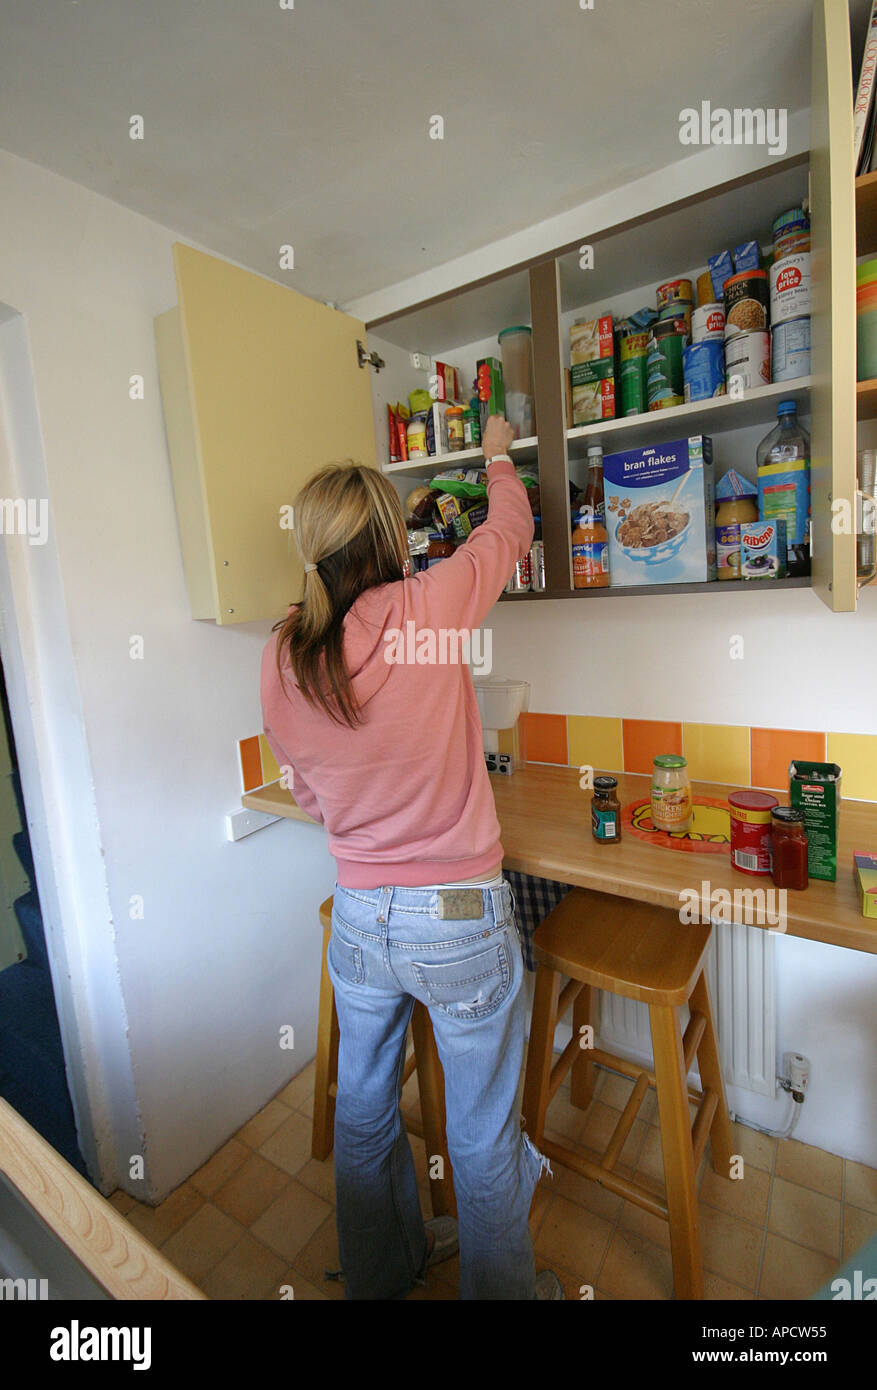 a student girls looking for food in a cupboard in a student house Stock Photo